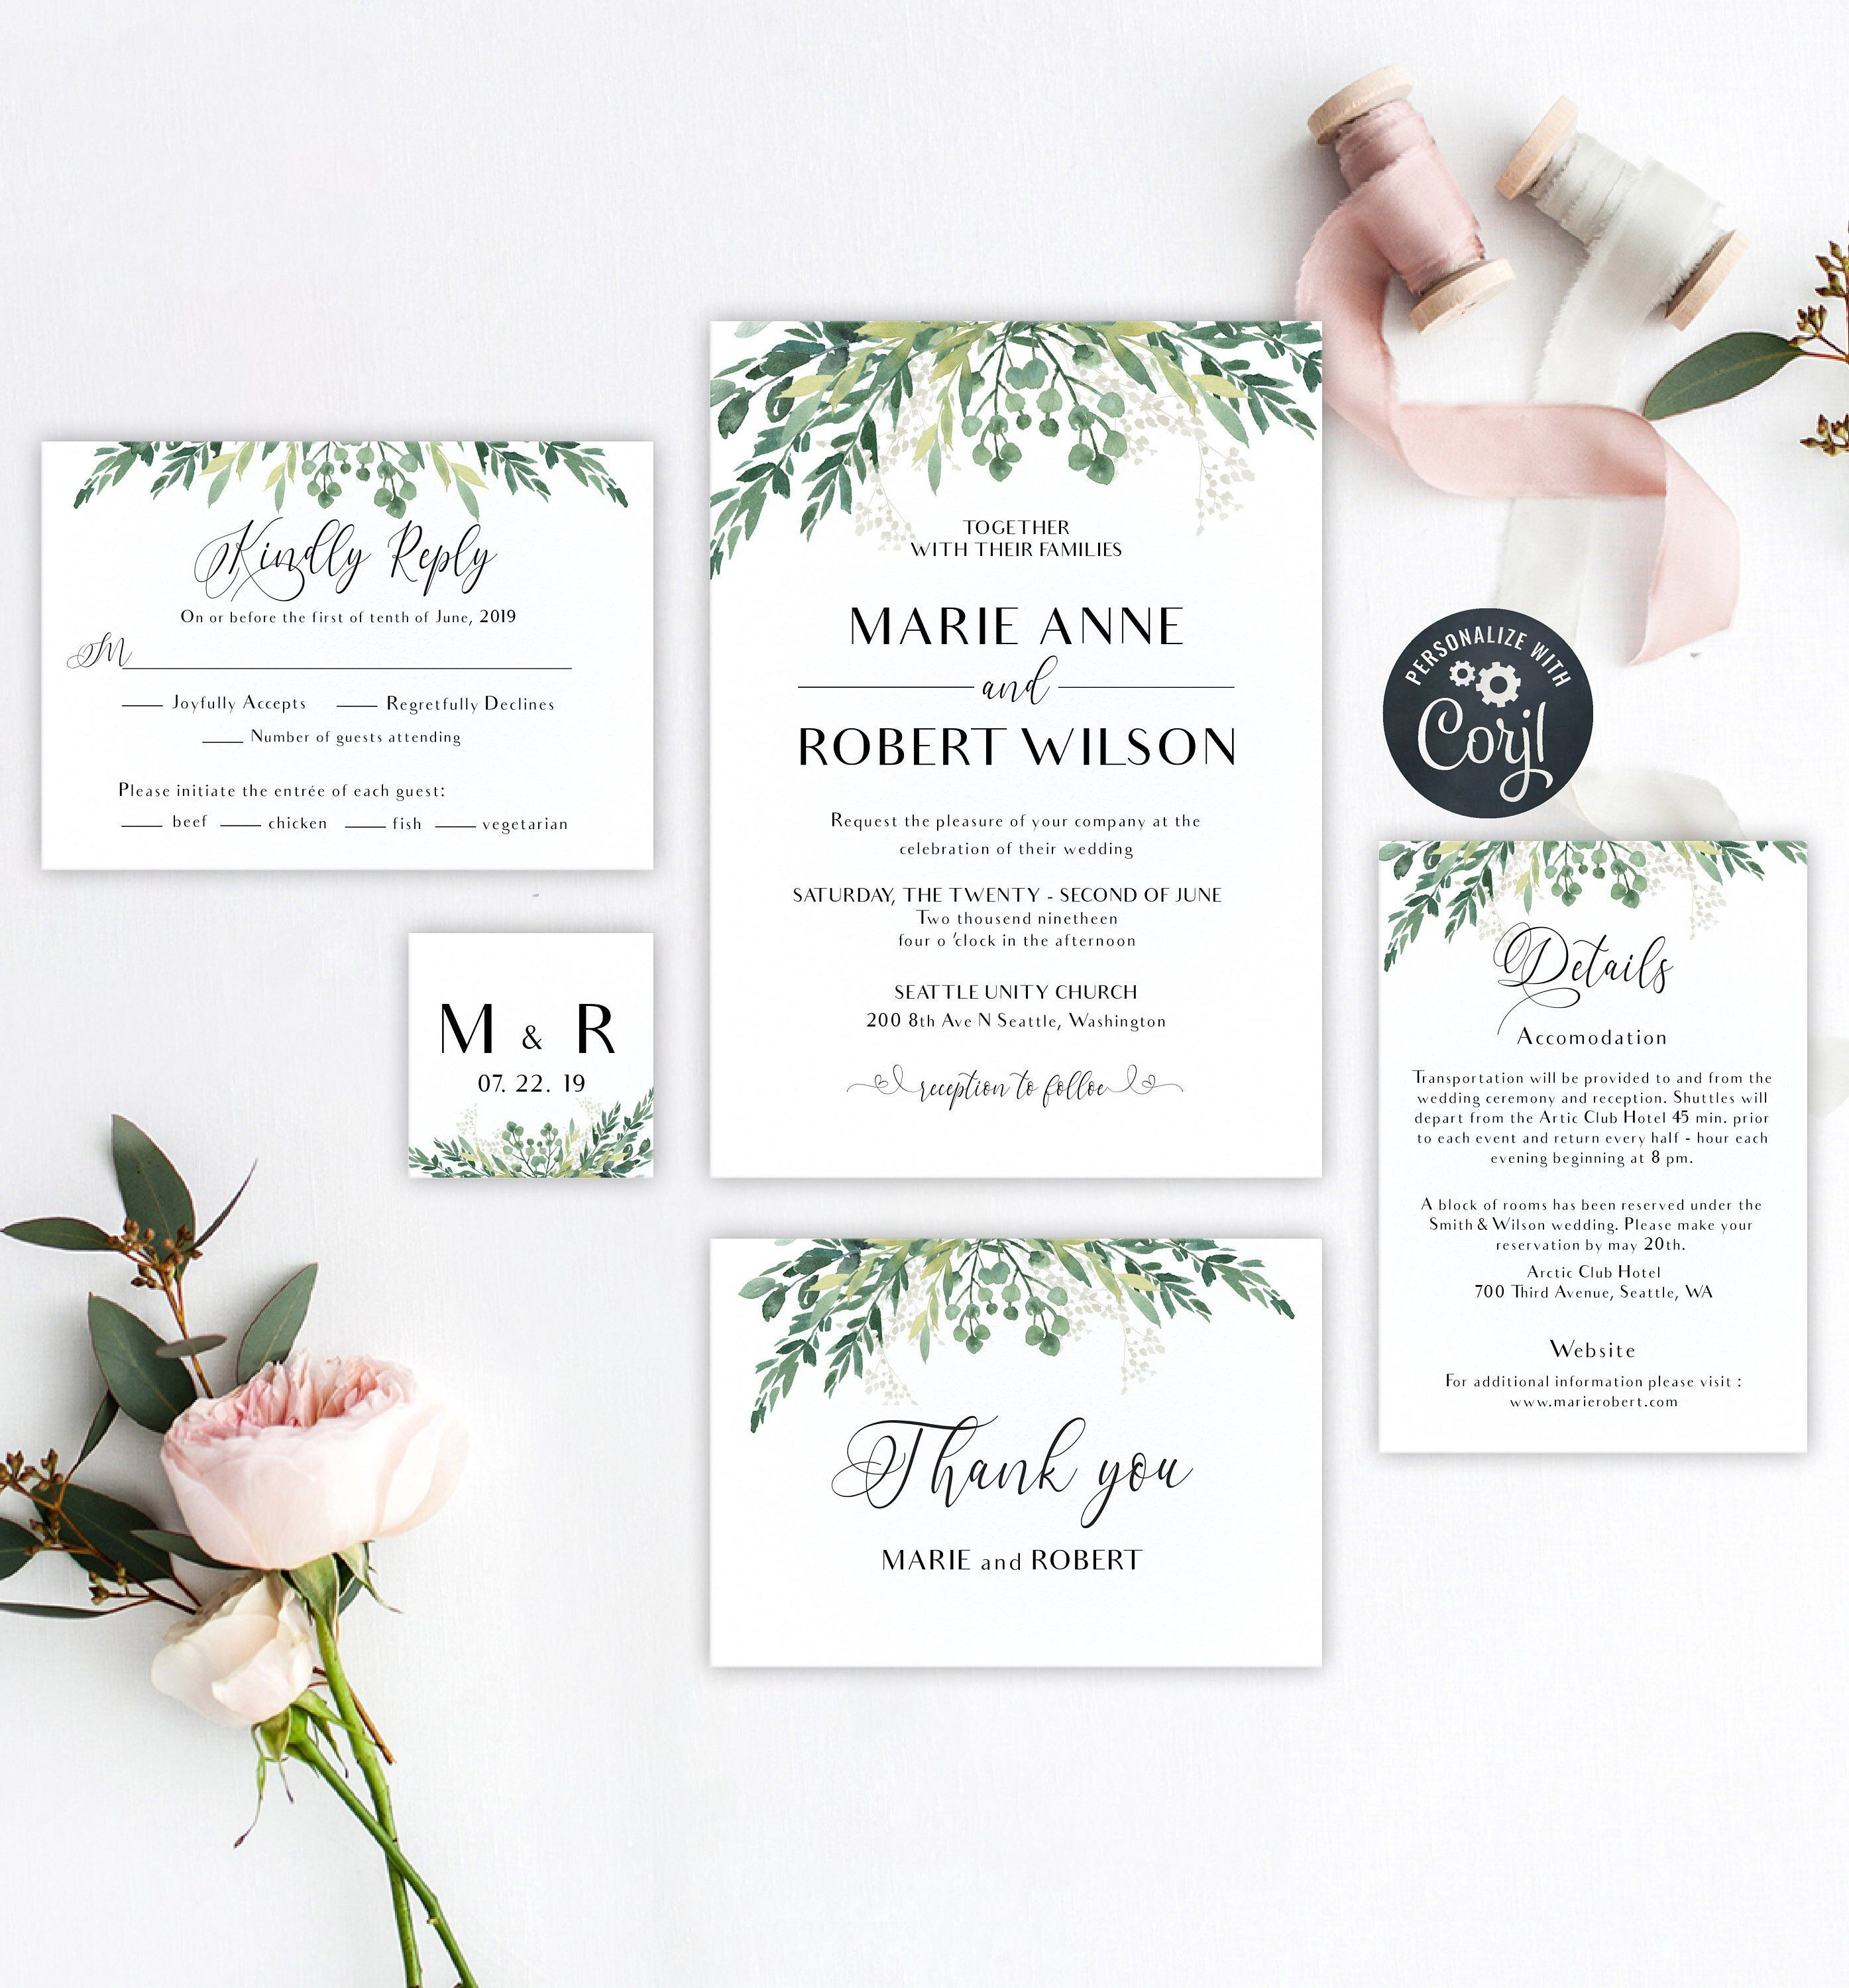 003 Exceptional Rustic Wedding Invitation Template Design  Templates Free For Word Maker PhotoshopFull